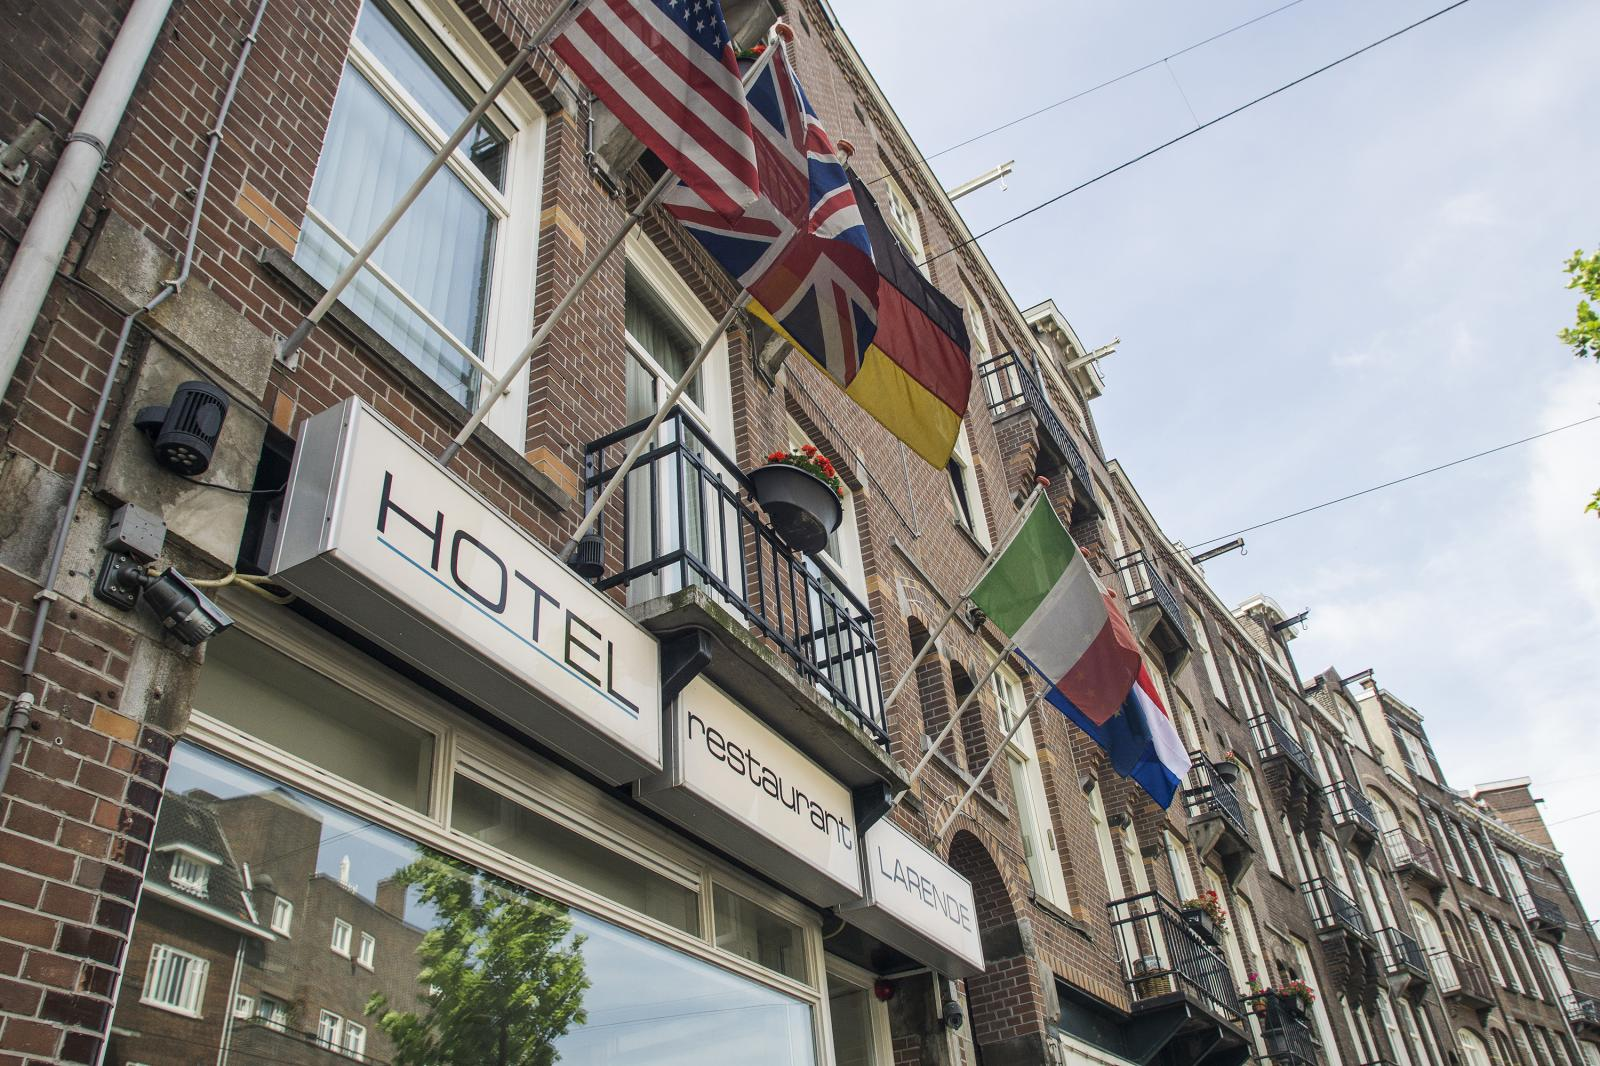 Hotel Larende Family Run Boutique Hotel In Amsterdam